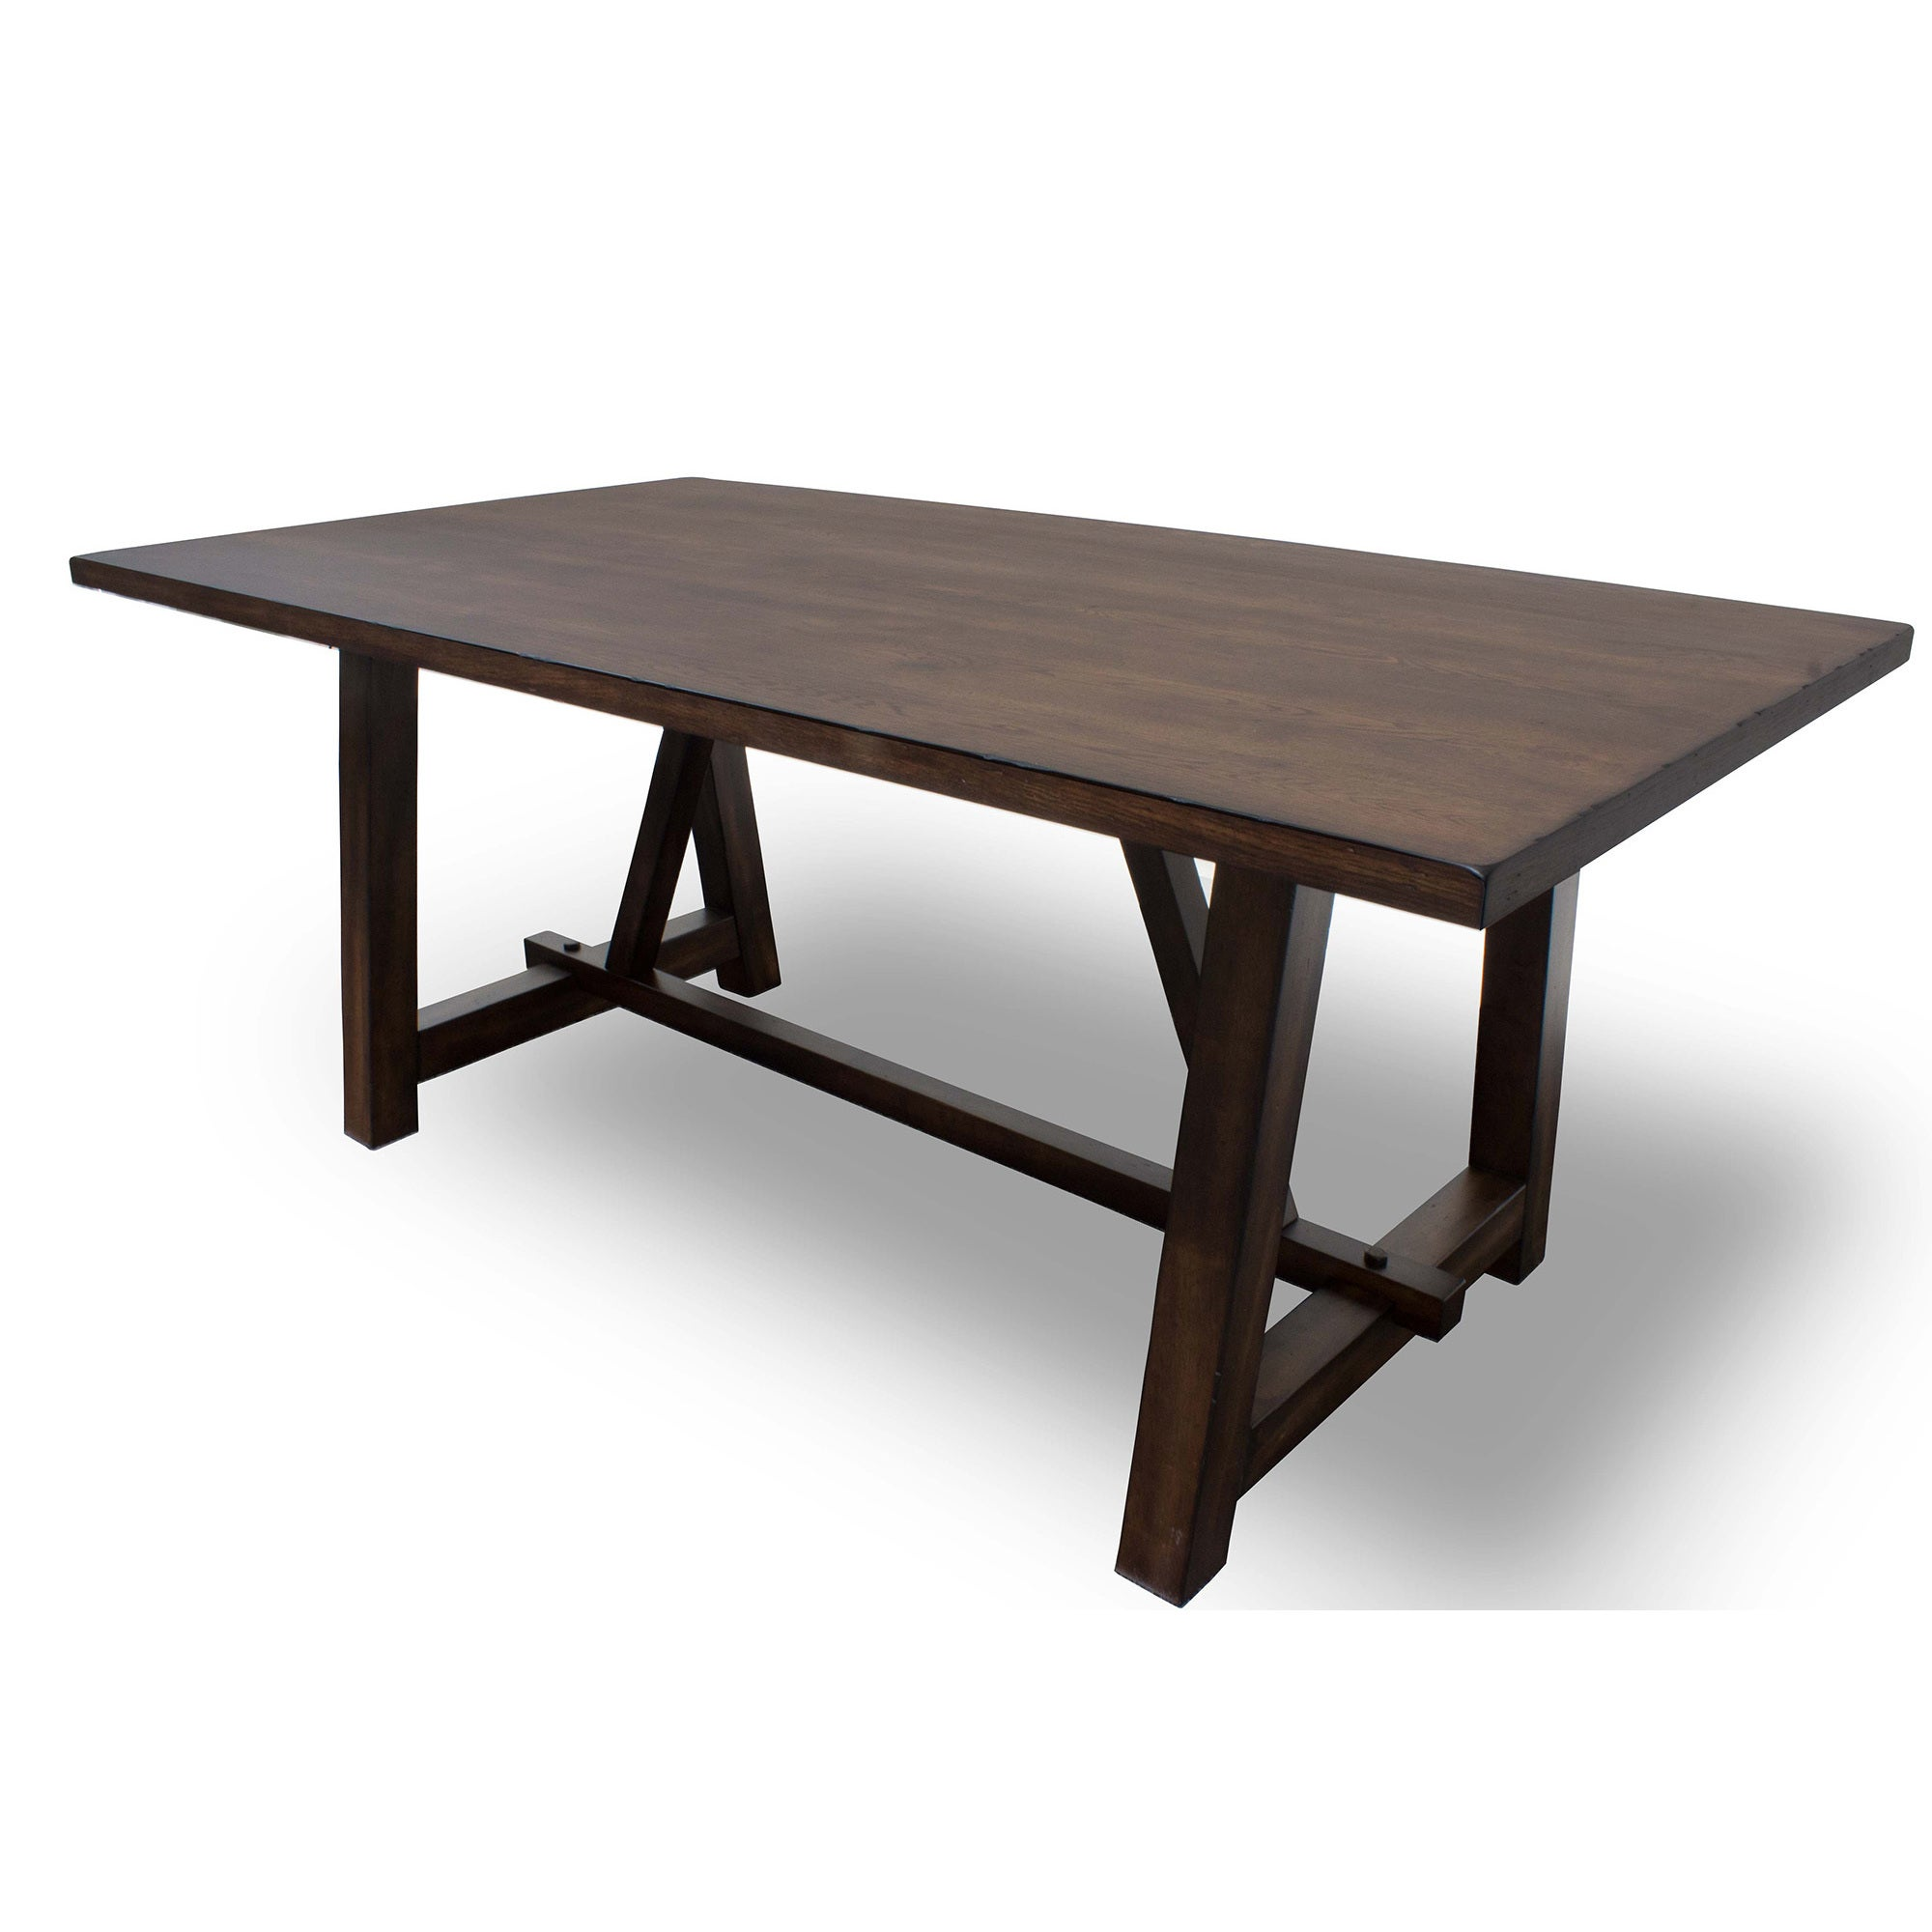 Best Master Furniture Hillary Brown Wood Dining Table - Walnut (Hillary Dining Table)